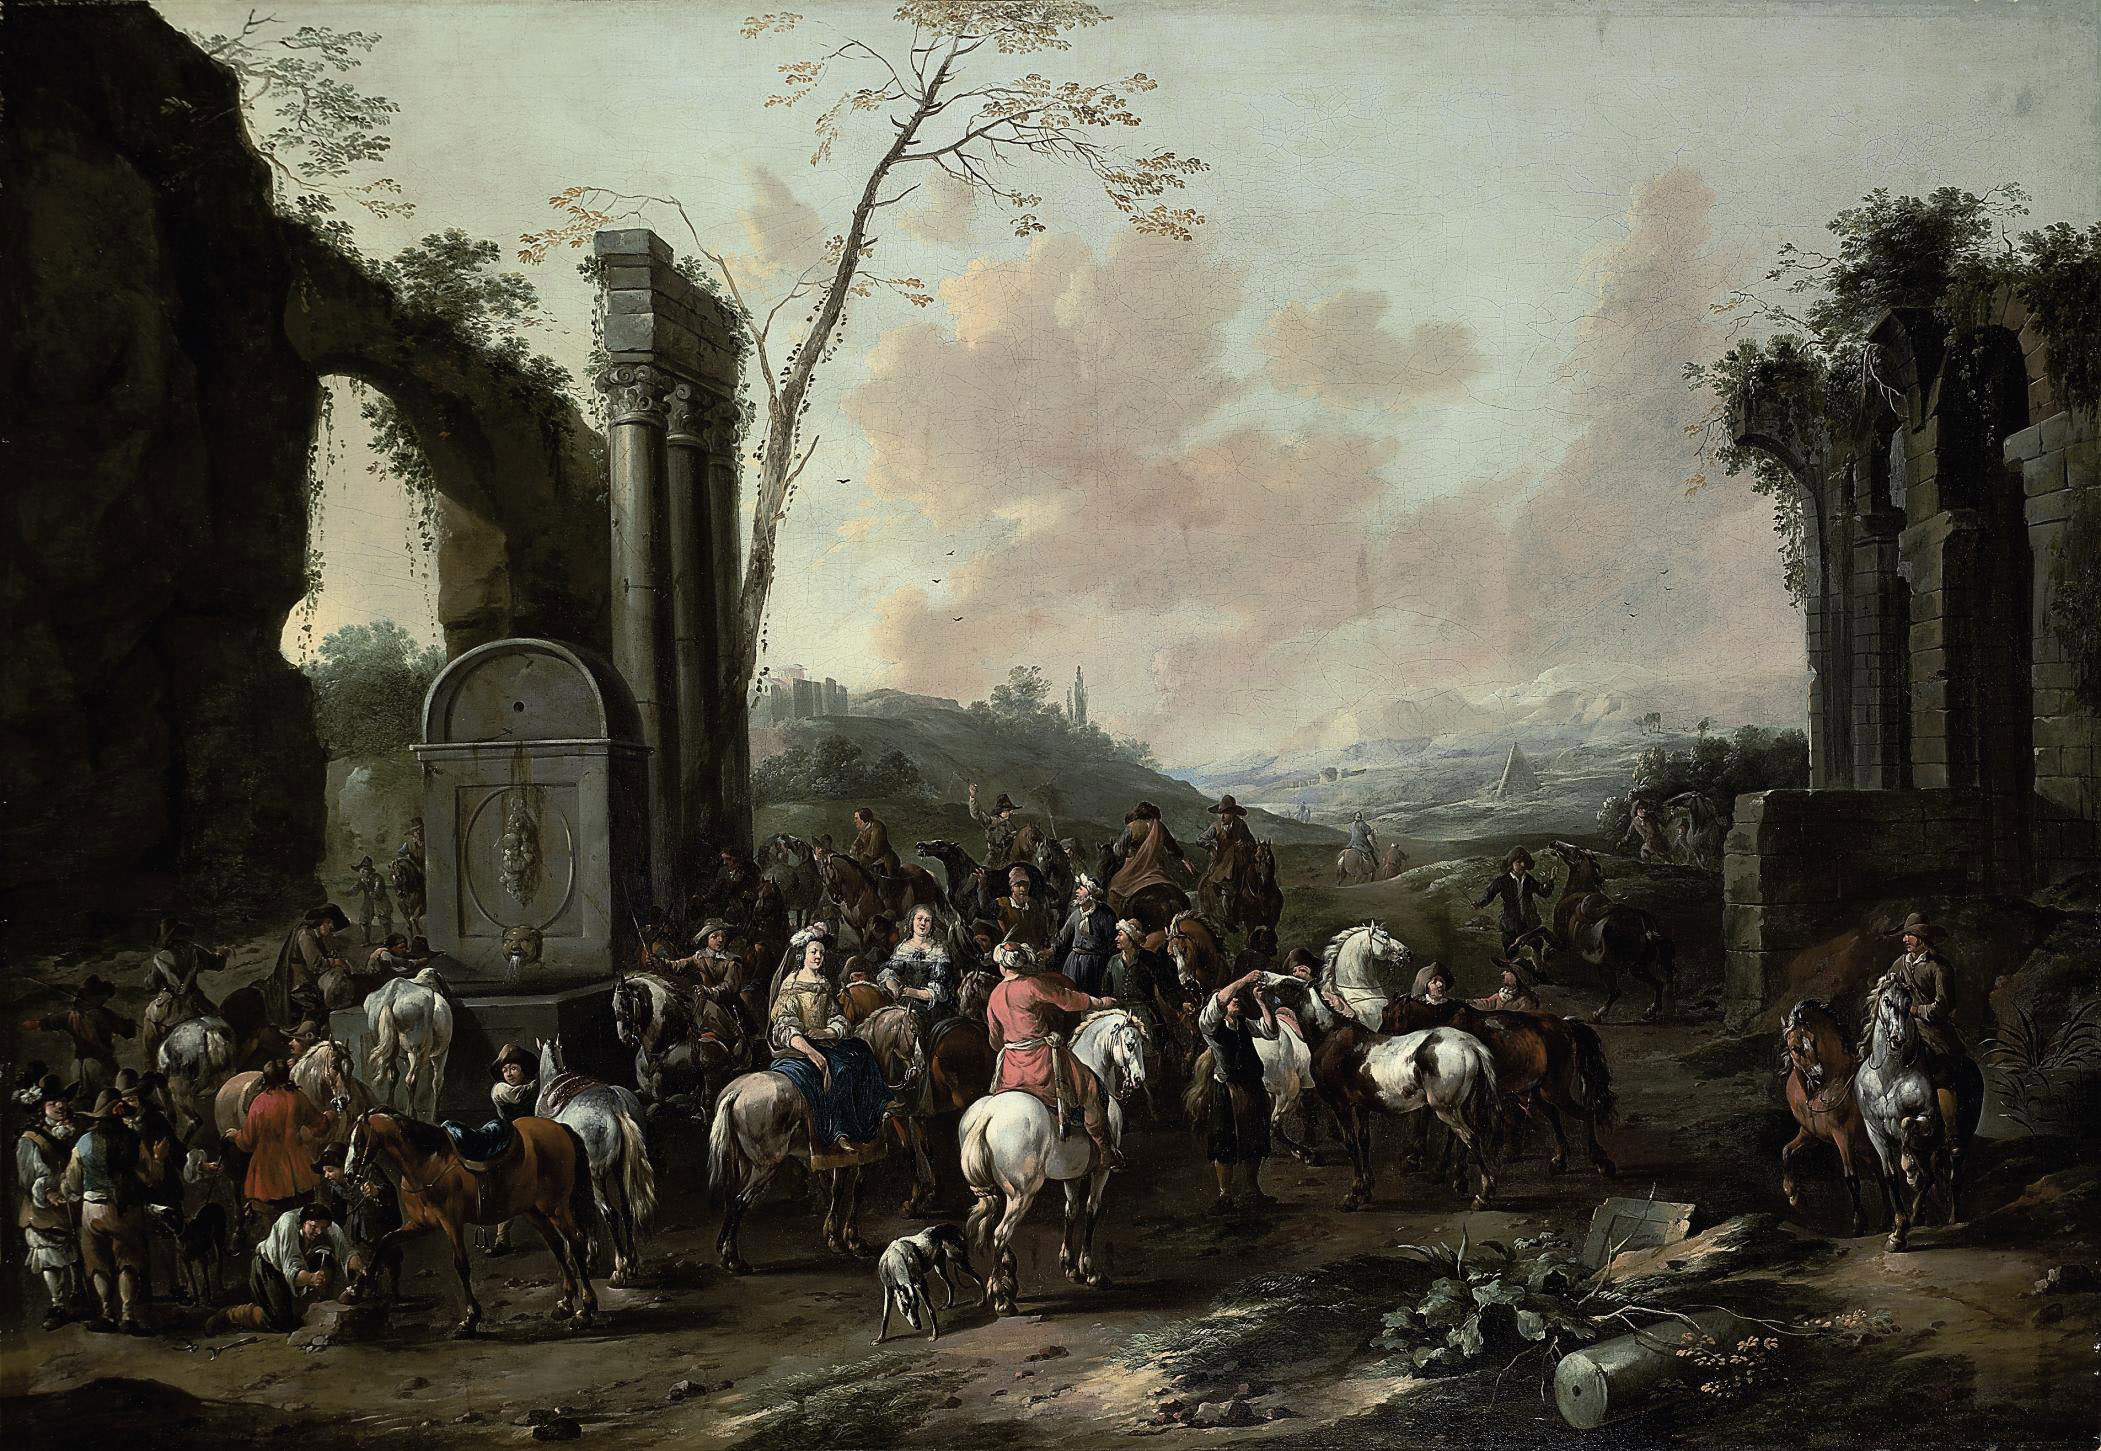 An Italianate landscape with travellers gathering by a fountain amongst classical ruins